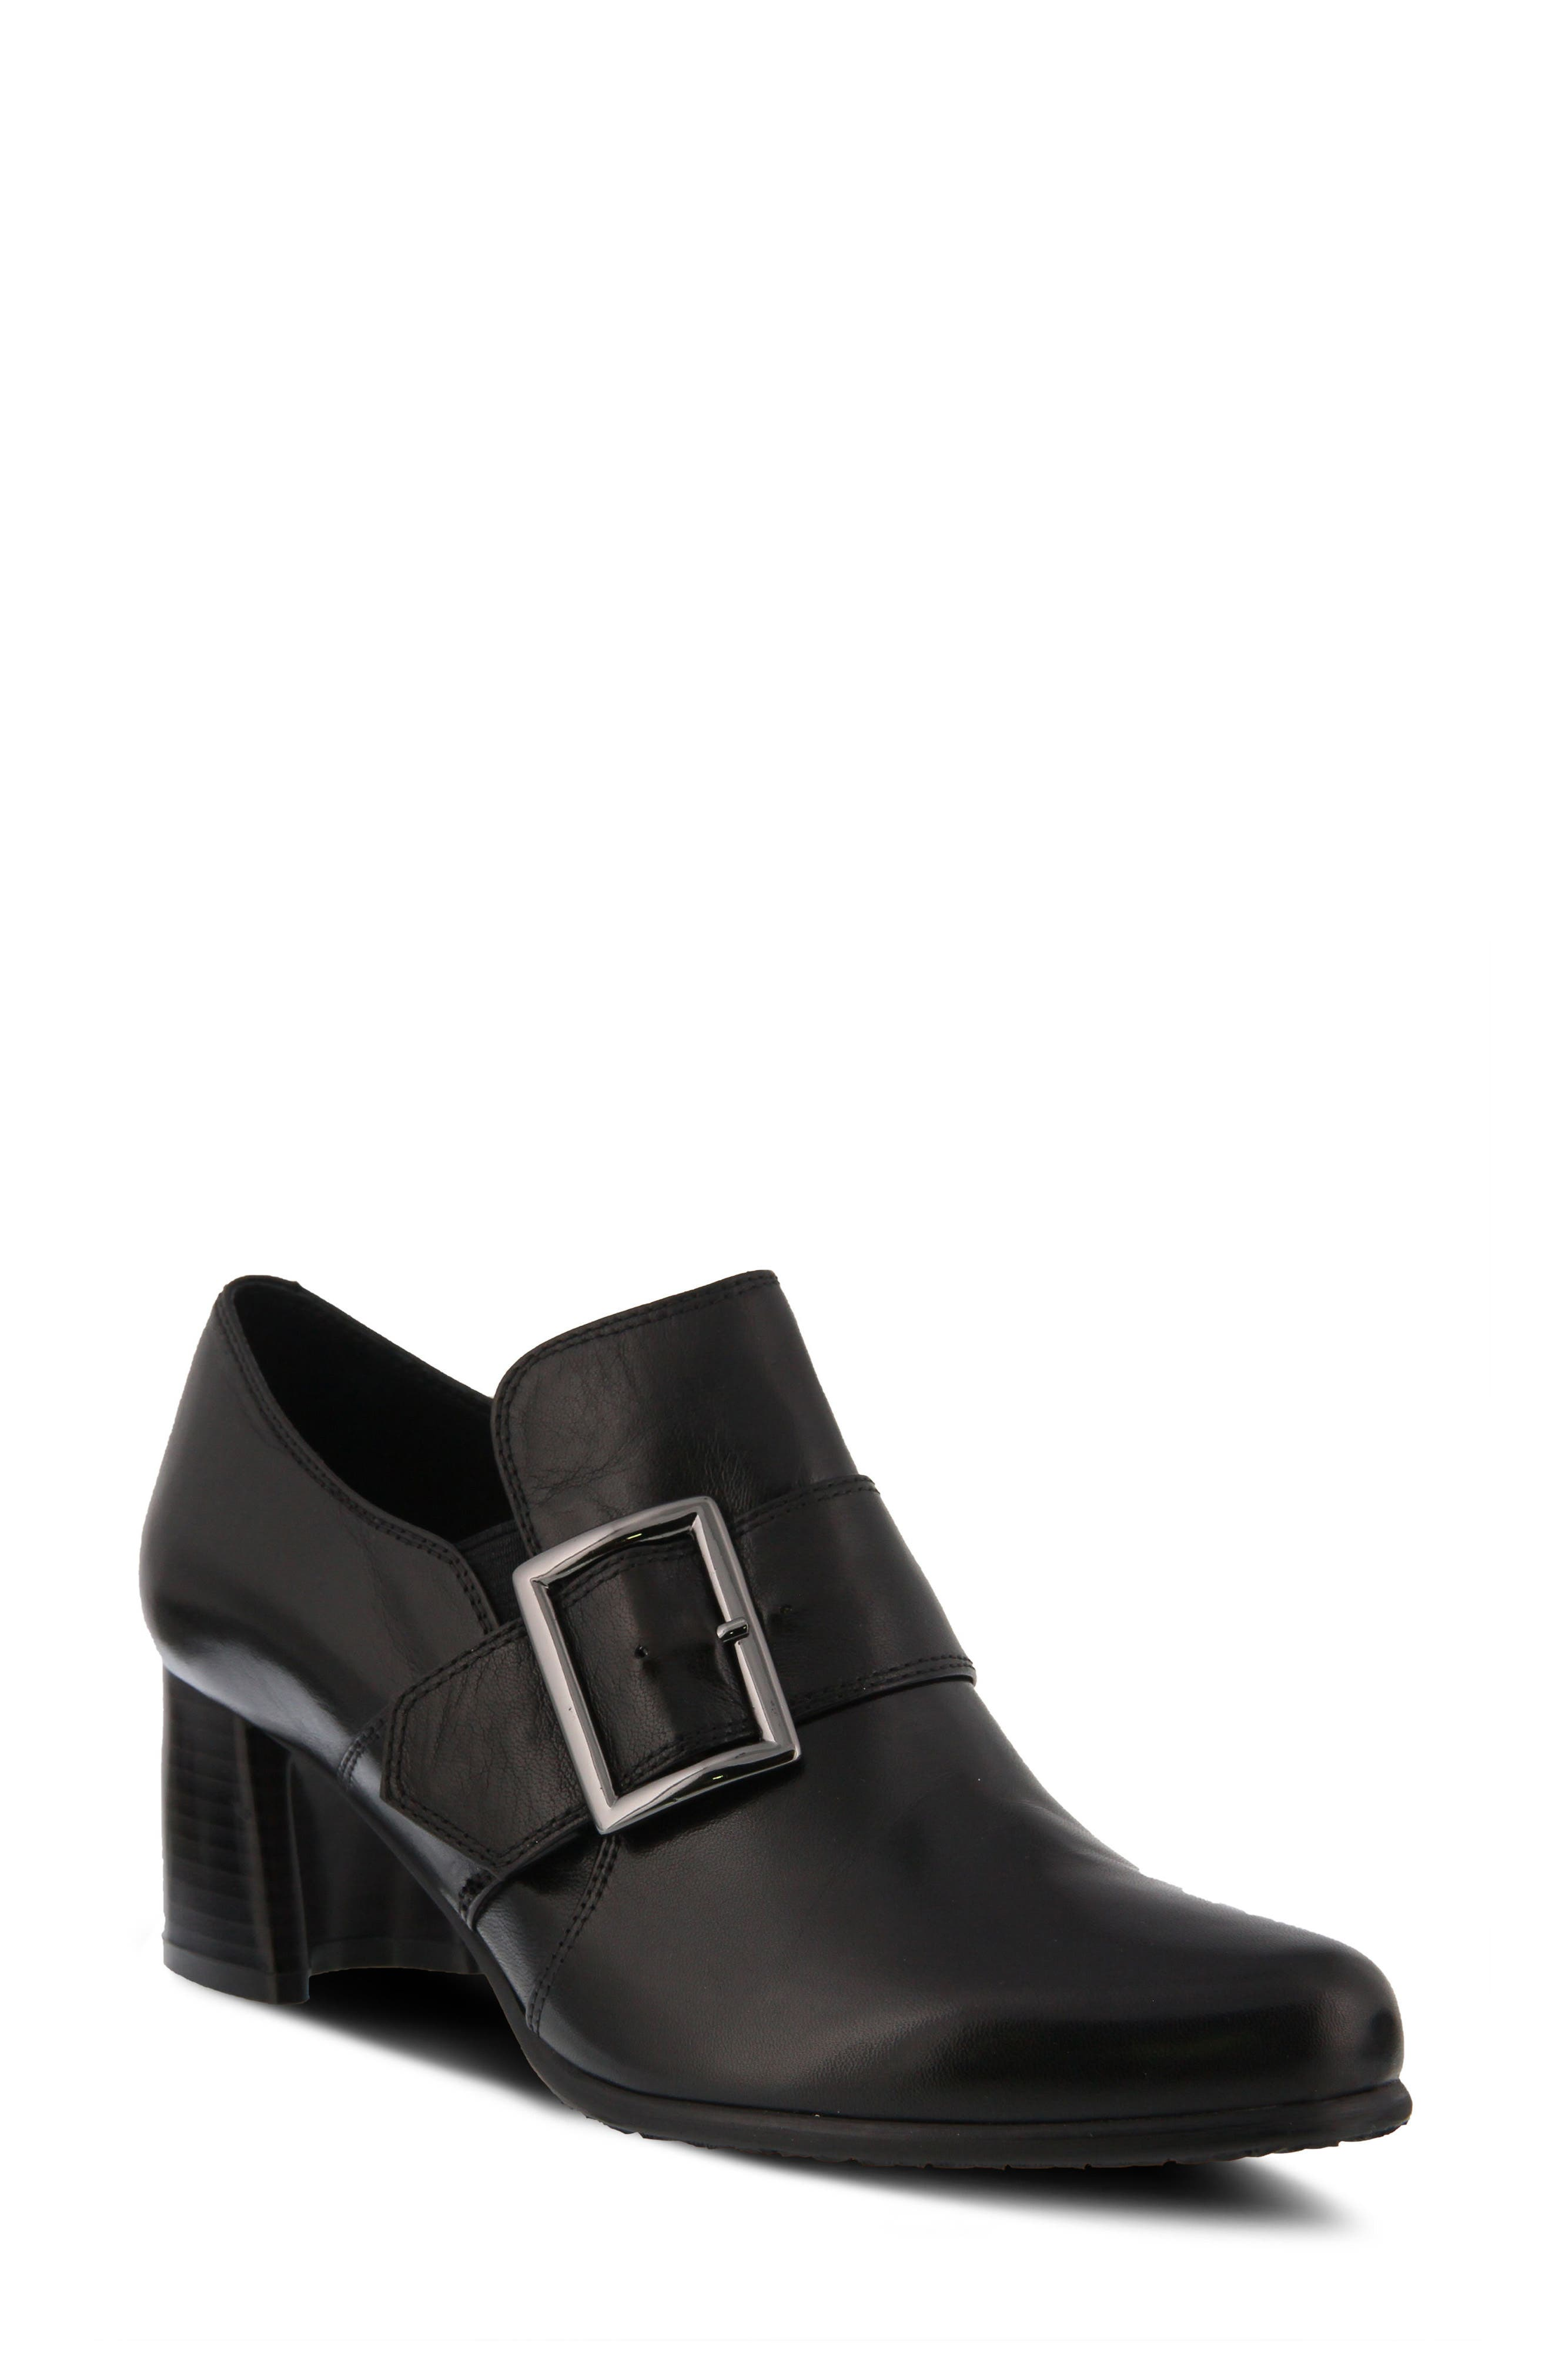 Dayana Bootie,                             Main thumbnail 1, color,                             BLACK LEATHER